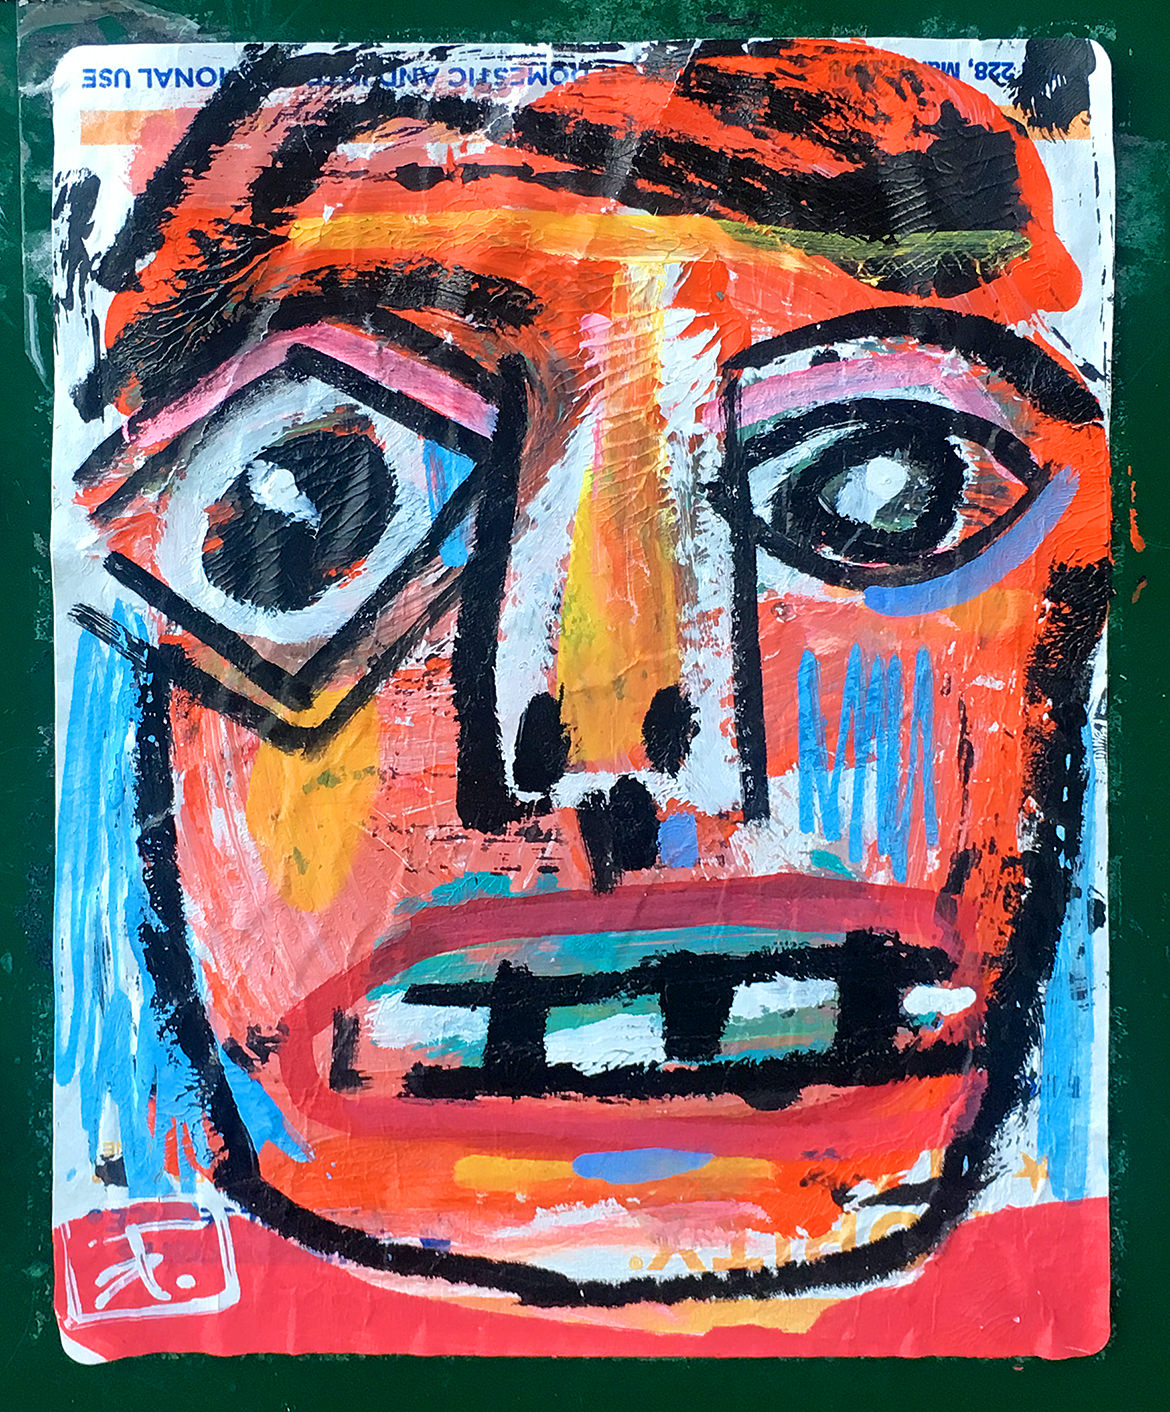 colorful painted face on a postal address label sticker